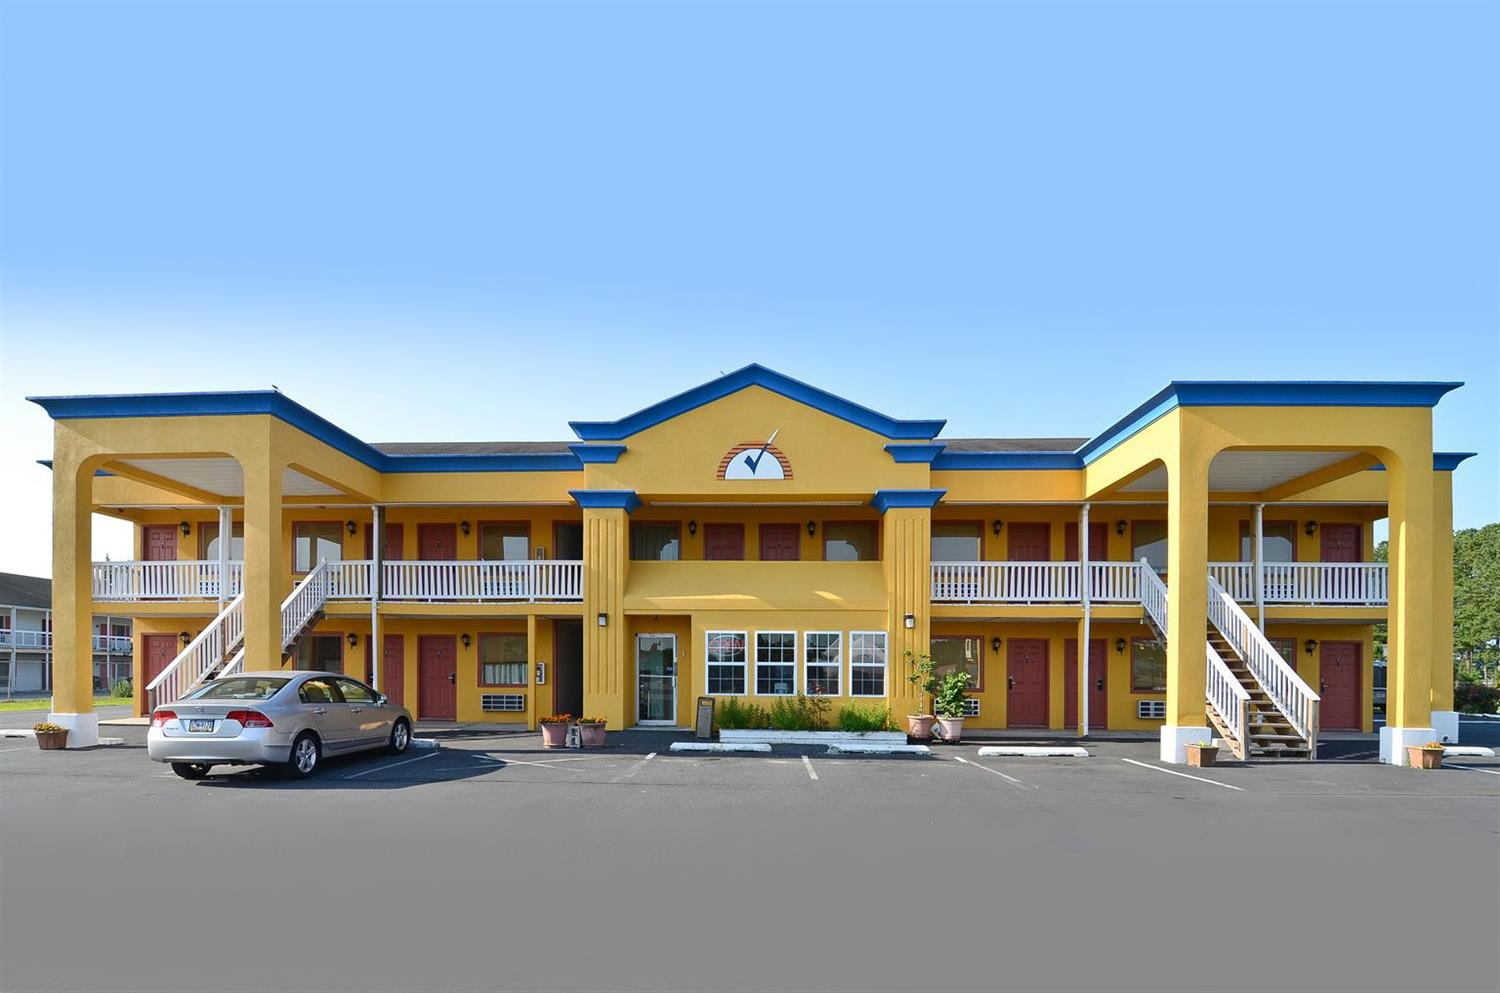 Princess Anne Md Hotels Amp Motels See All Discounts